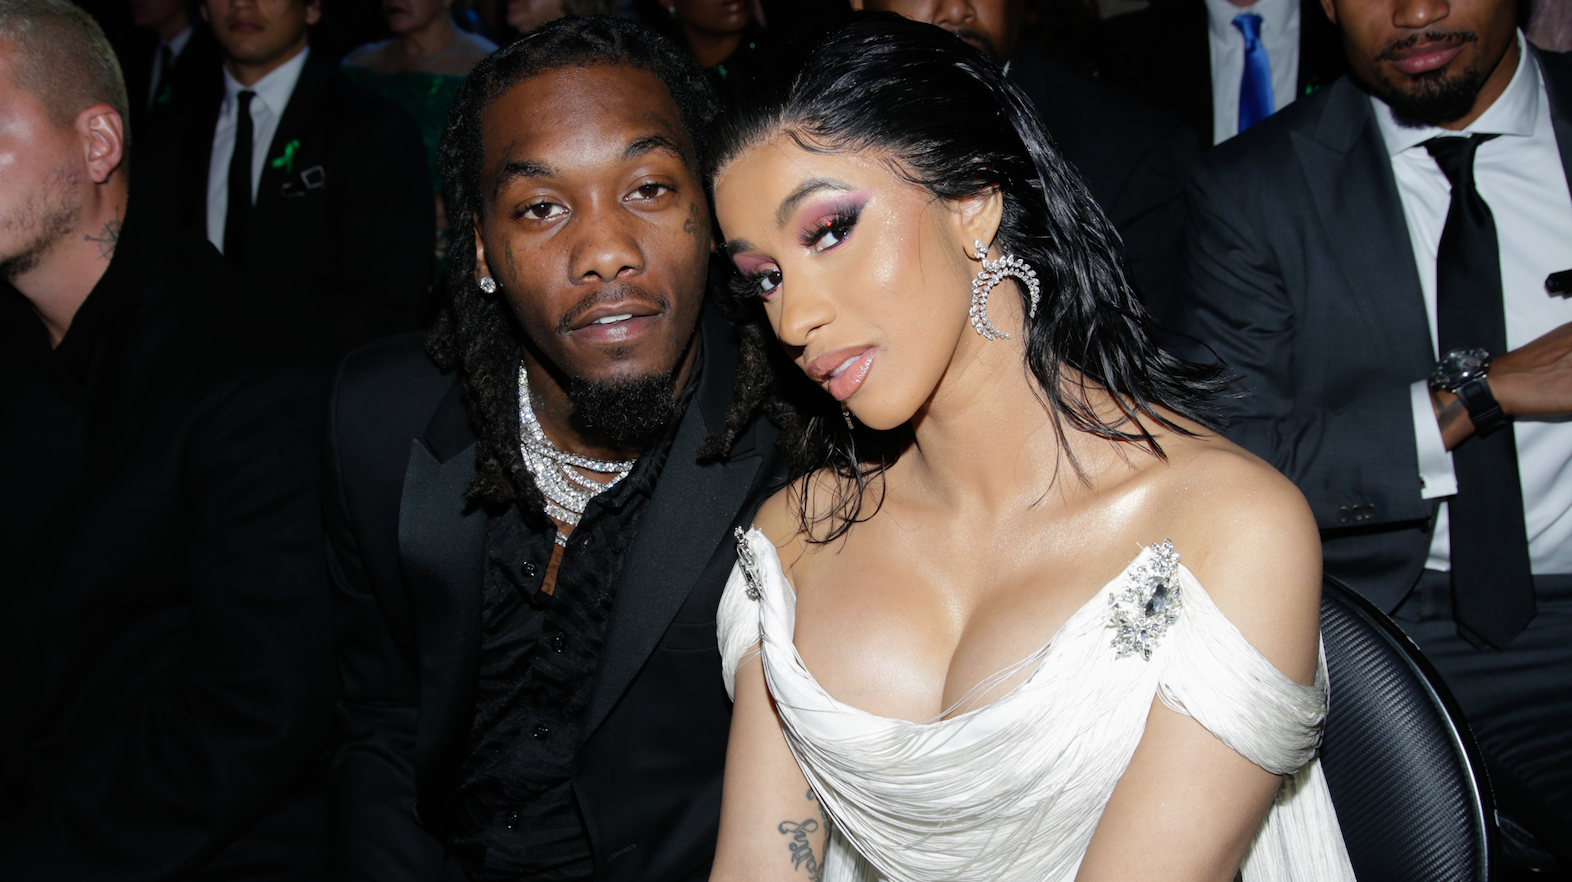 Offset Shares Never-Before-Seen Video of Cardi B Giving Birth in Migos Documentary Promo